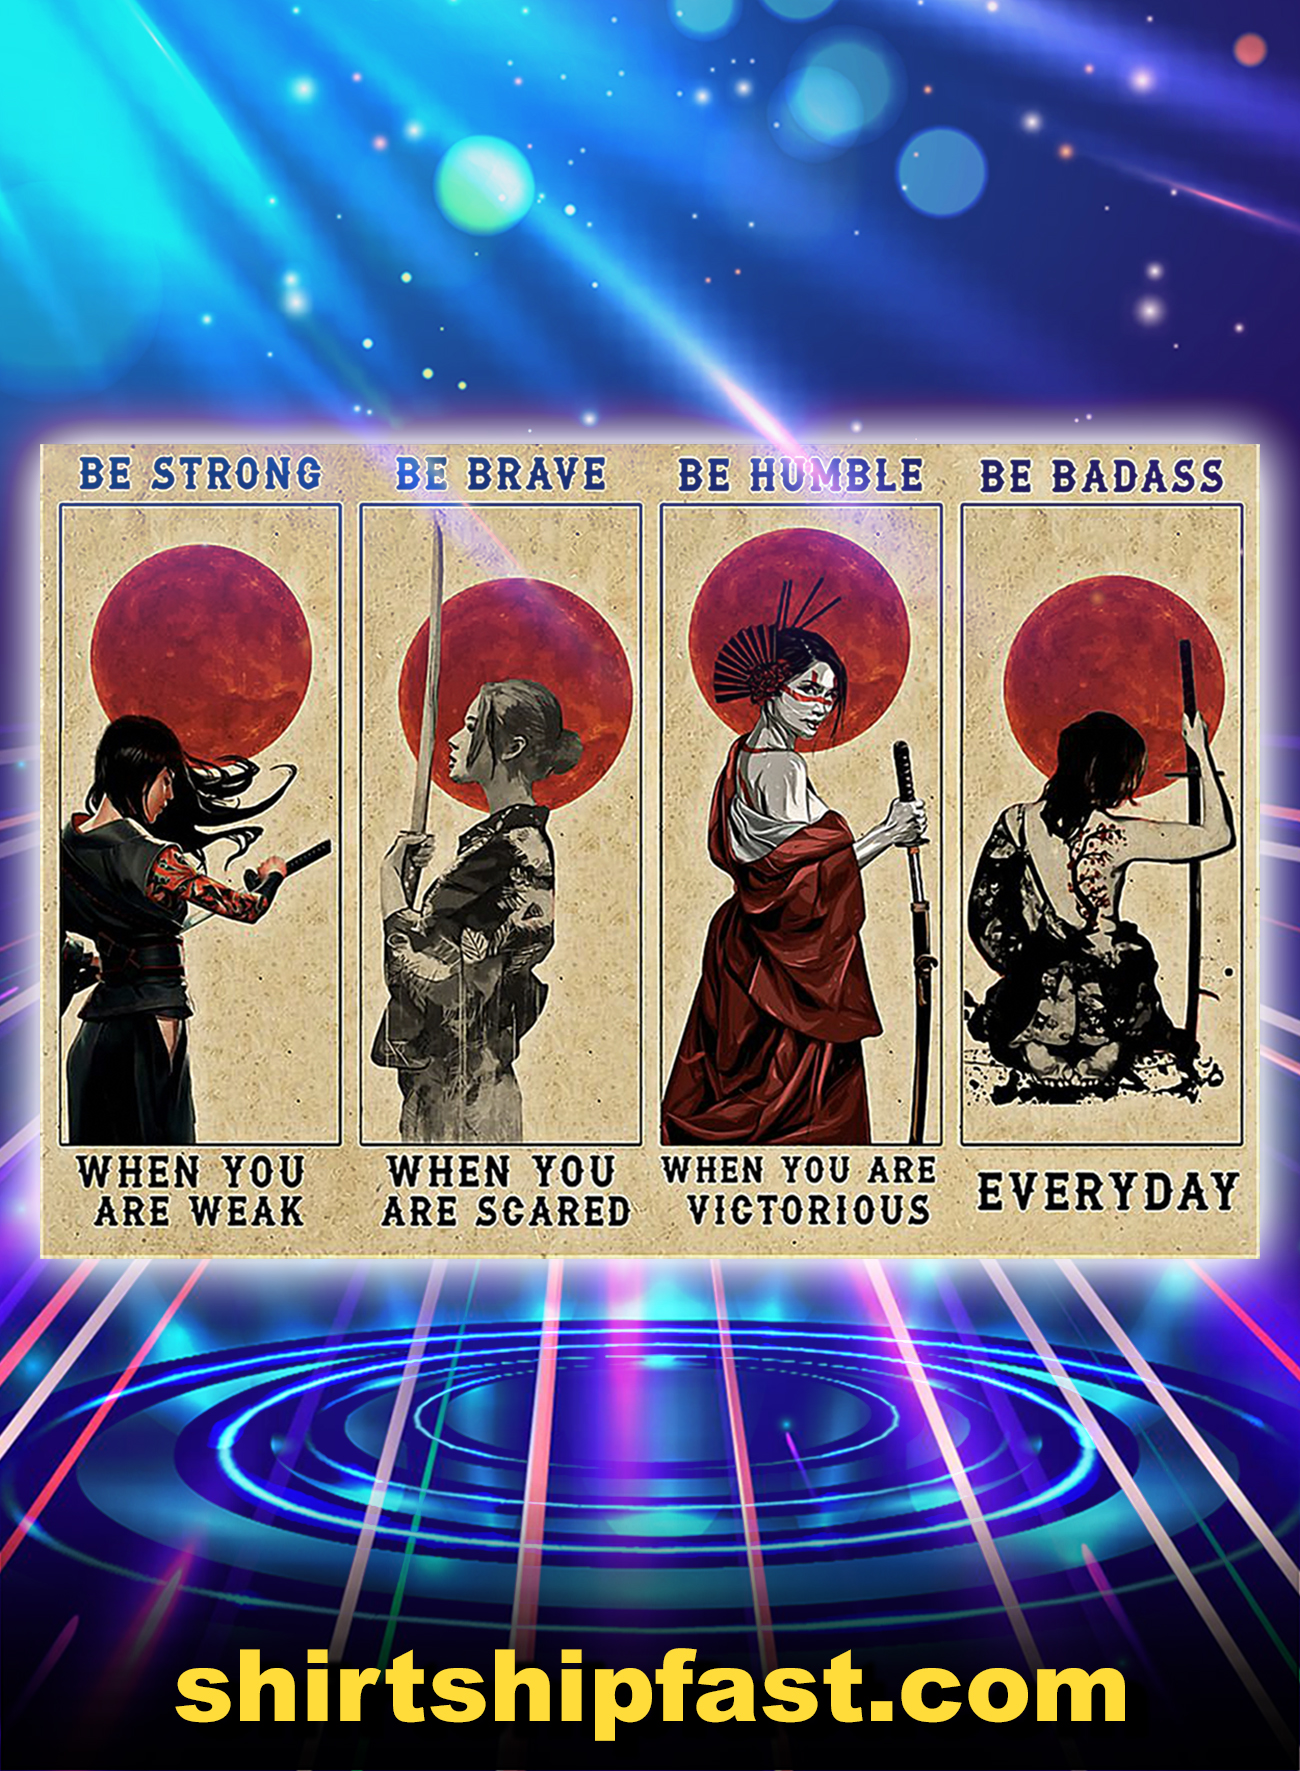 Female samurai be strong be brave be humble be badass poster - A1